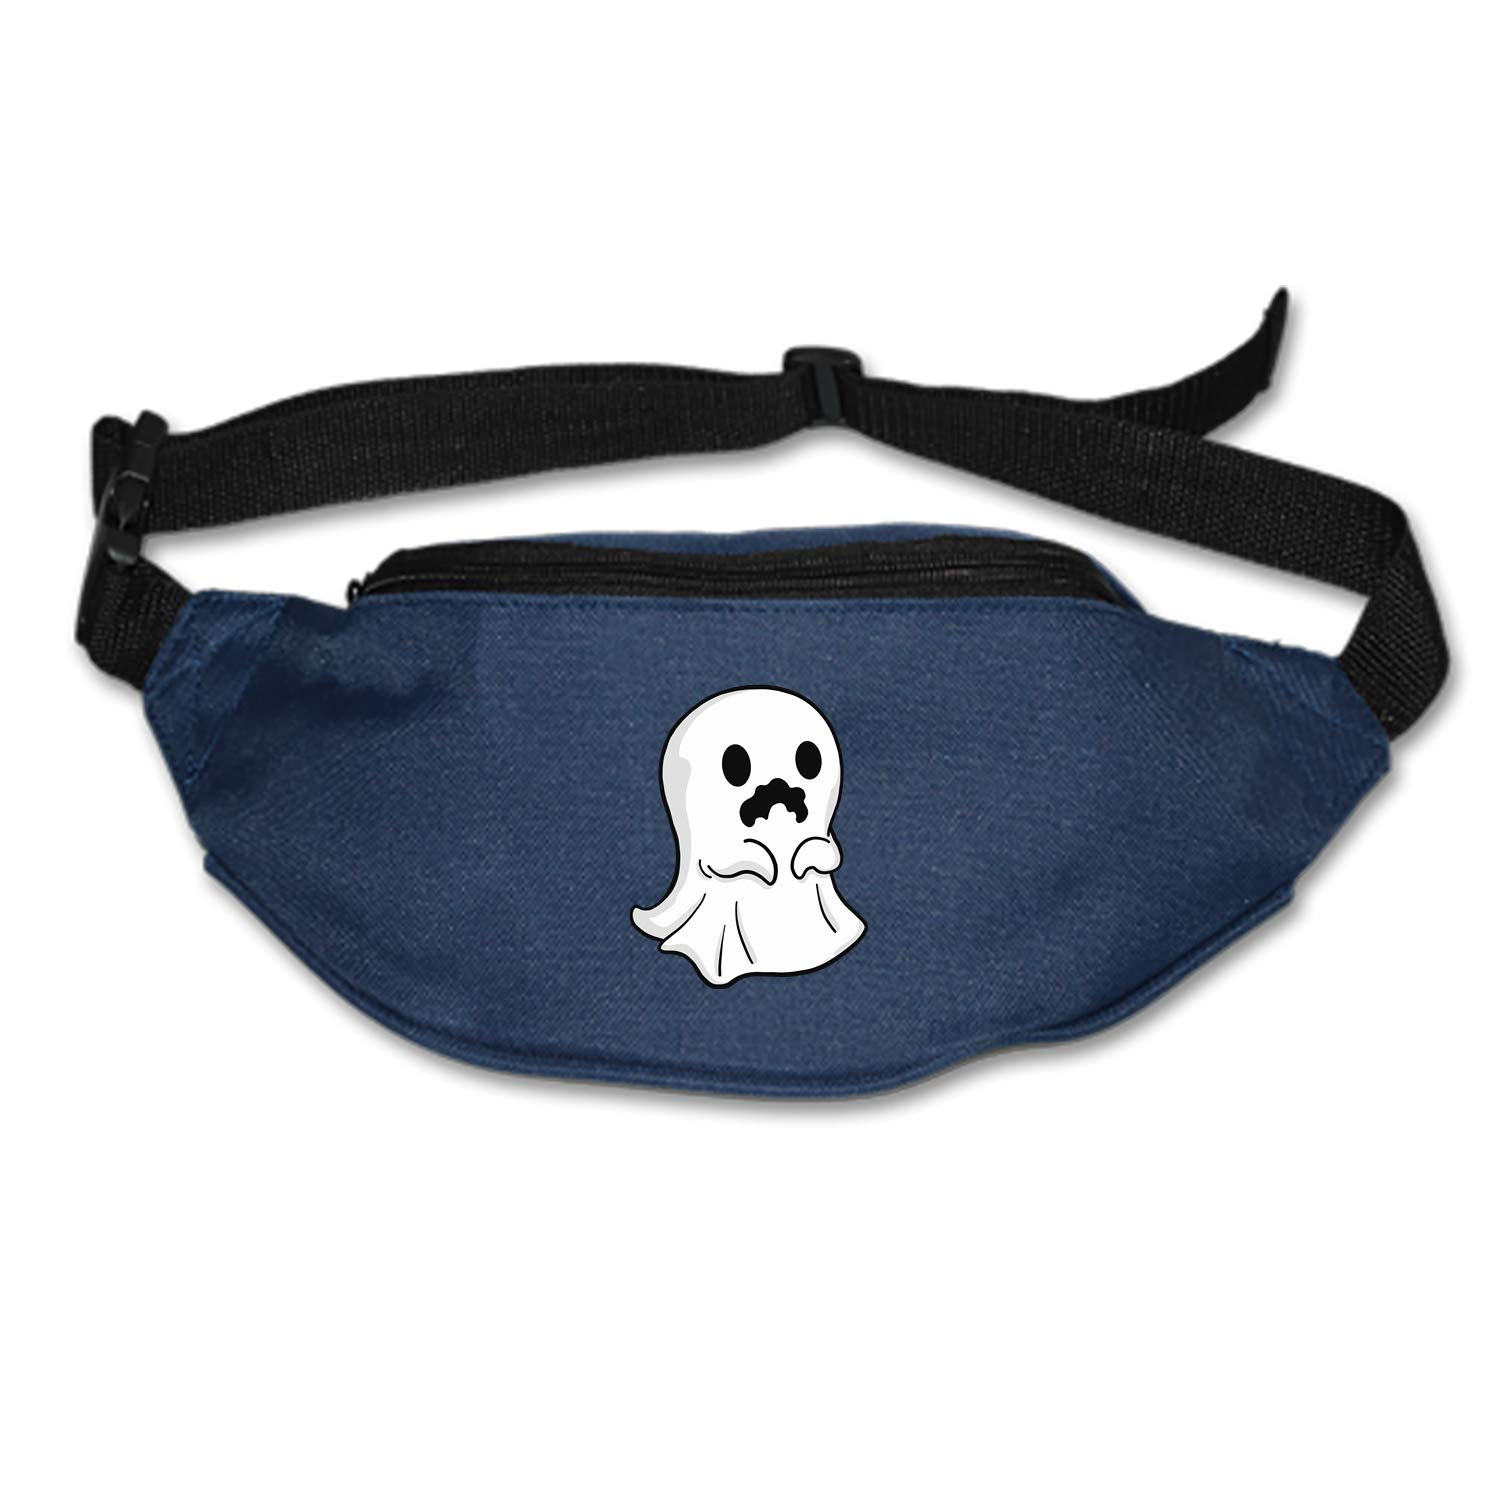 Halloween Haunted House Running Lumbar Pack For Travel Outdoor Sports Walking Travel Waist Pack,travel Pocket With Adjustable Belt